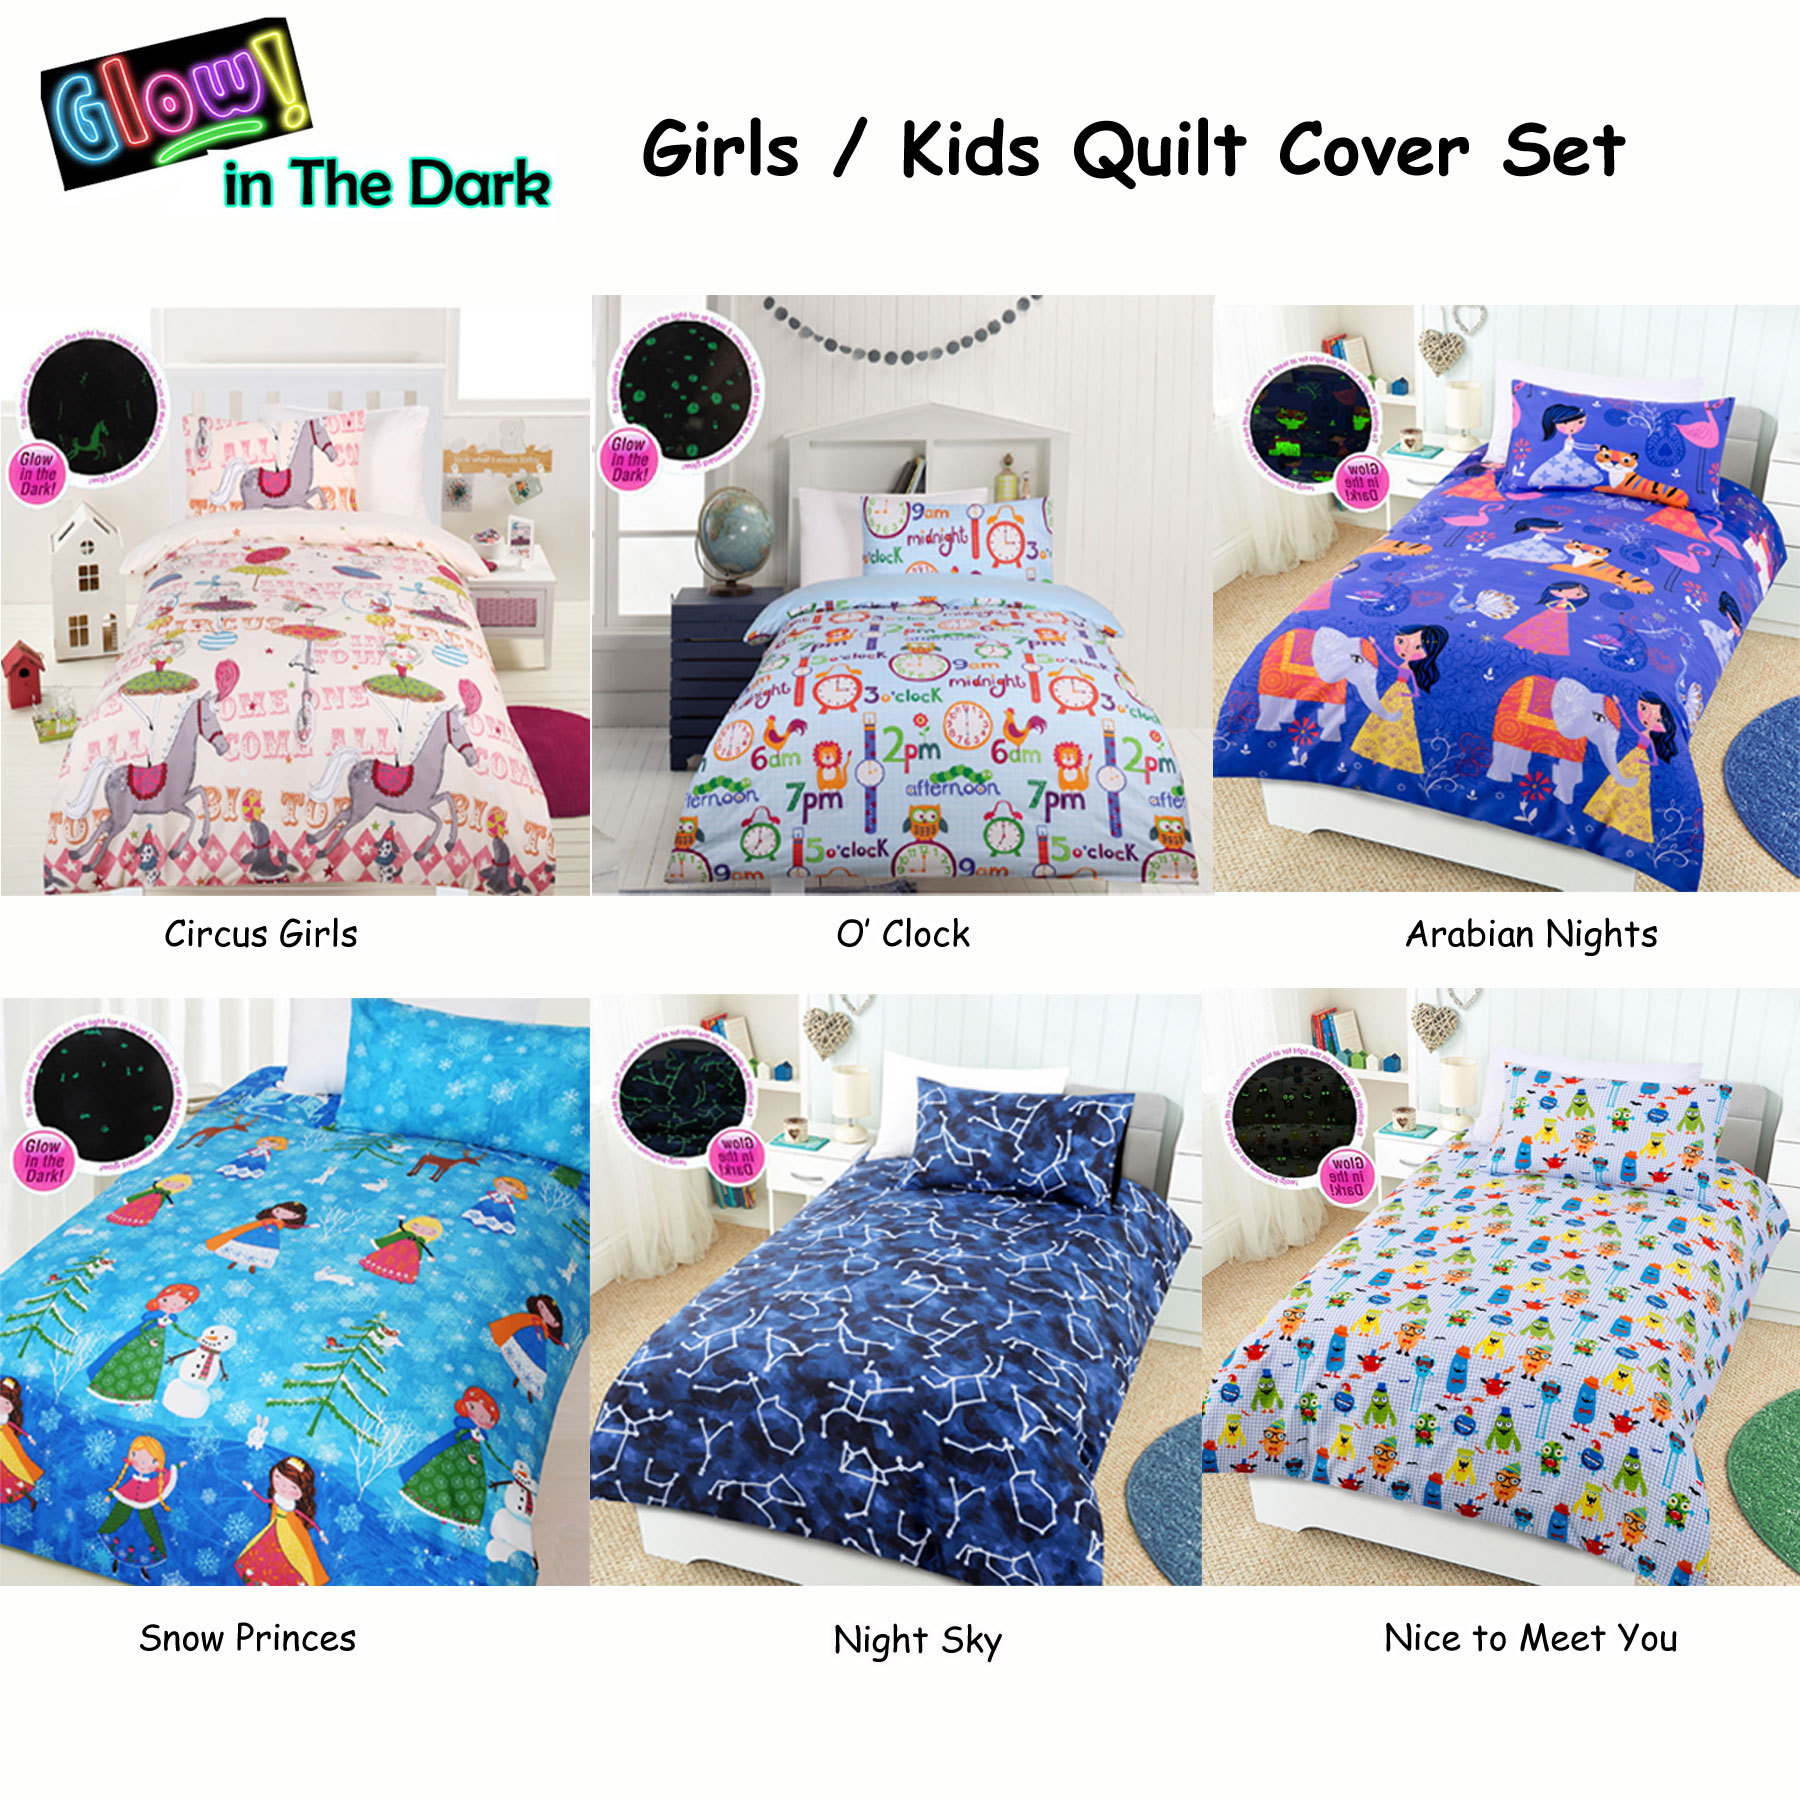 Glow in The Dark Girls/Kids Quilt Cover Set by Happy Kids - SINGLE ... : kids quilt - Adamdwight.com